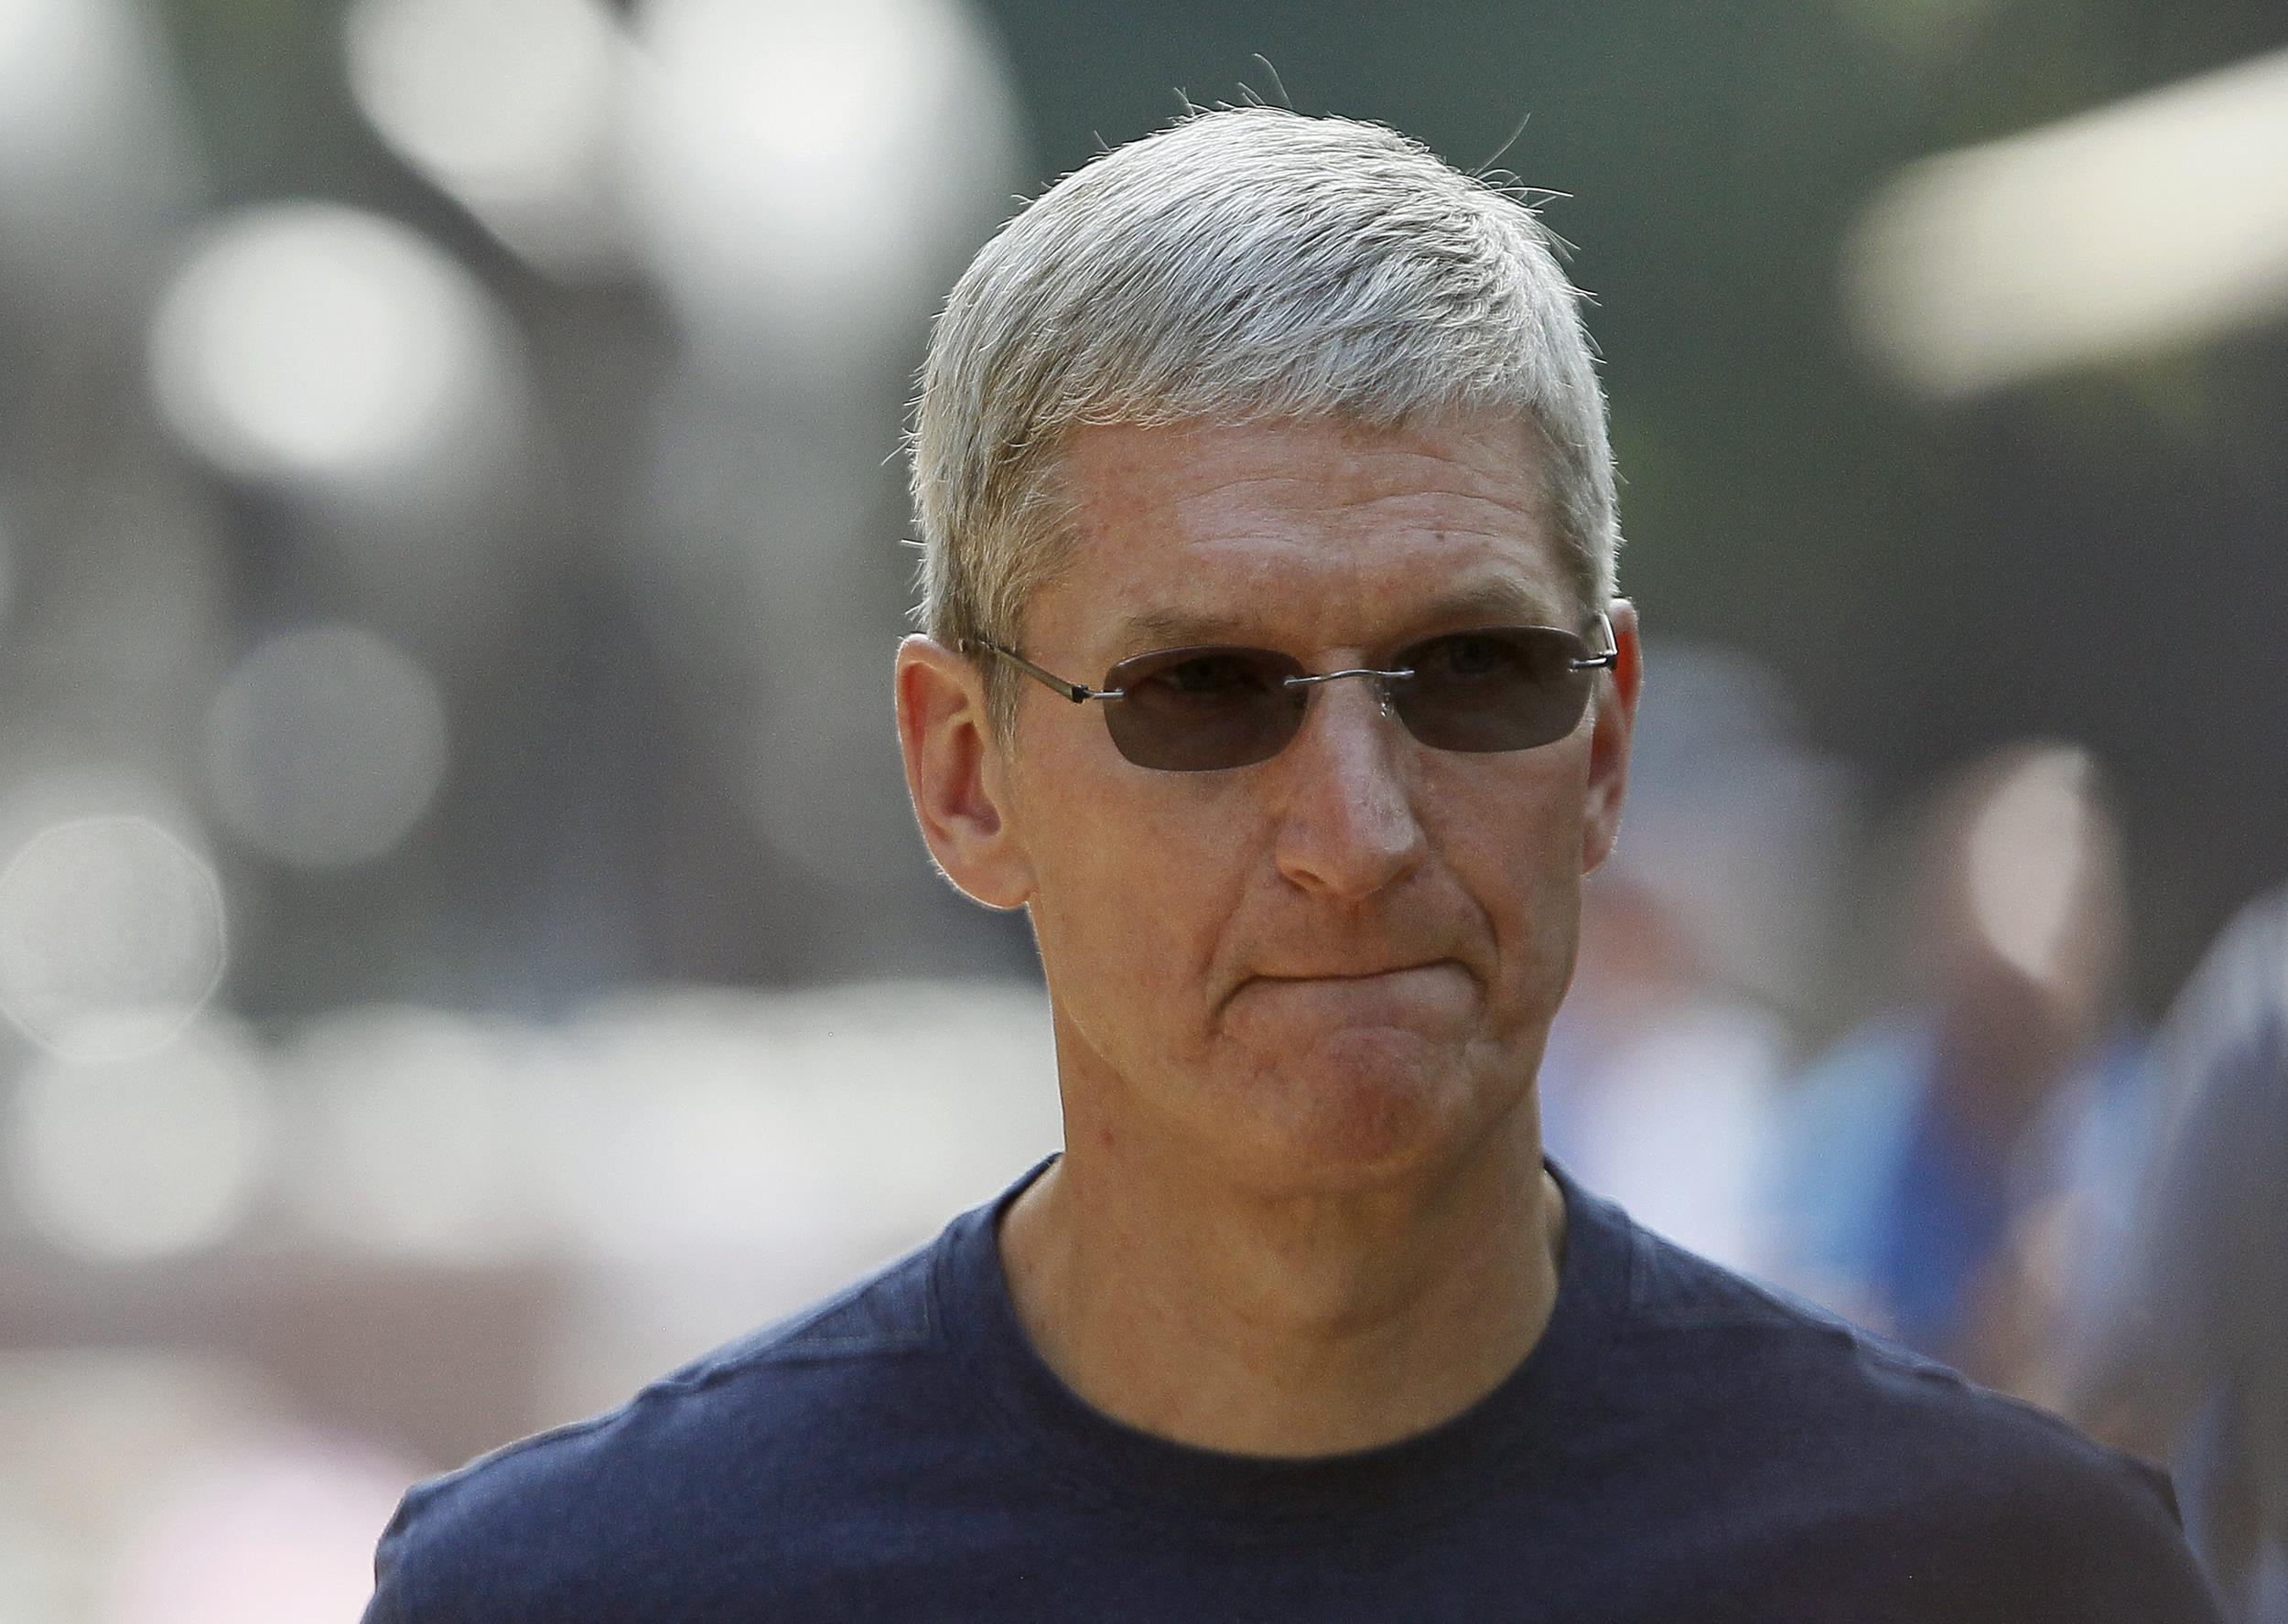 Apple CEO Talks Security With